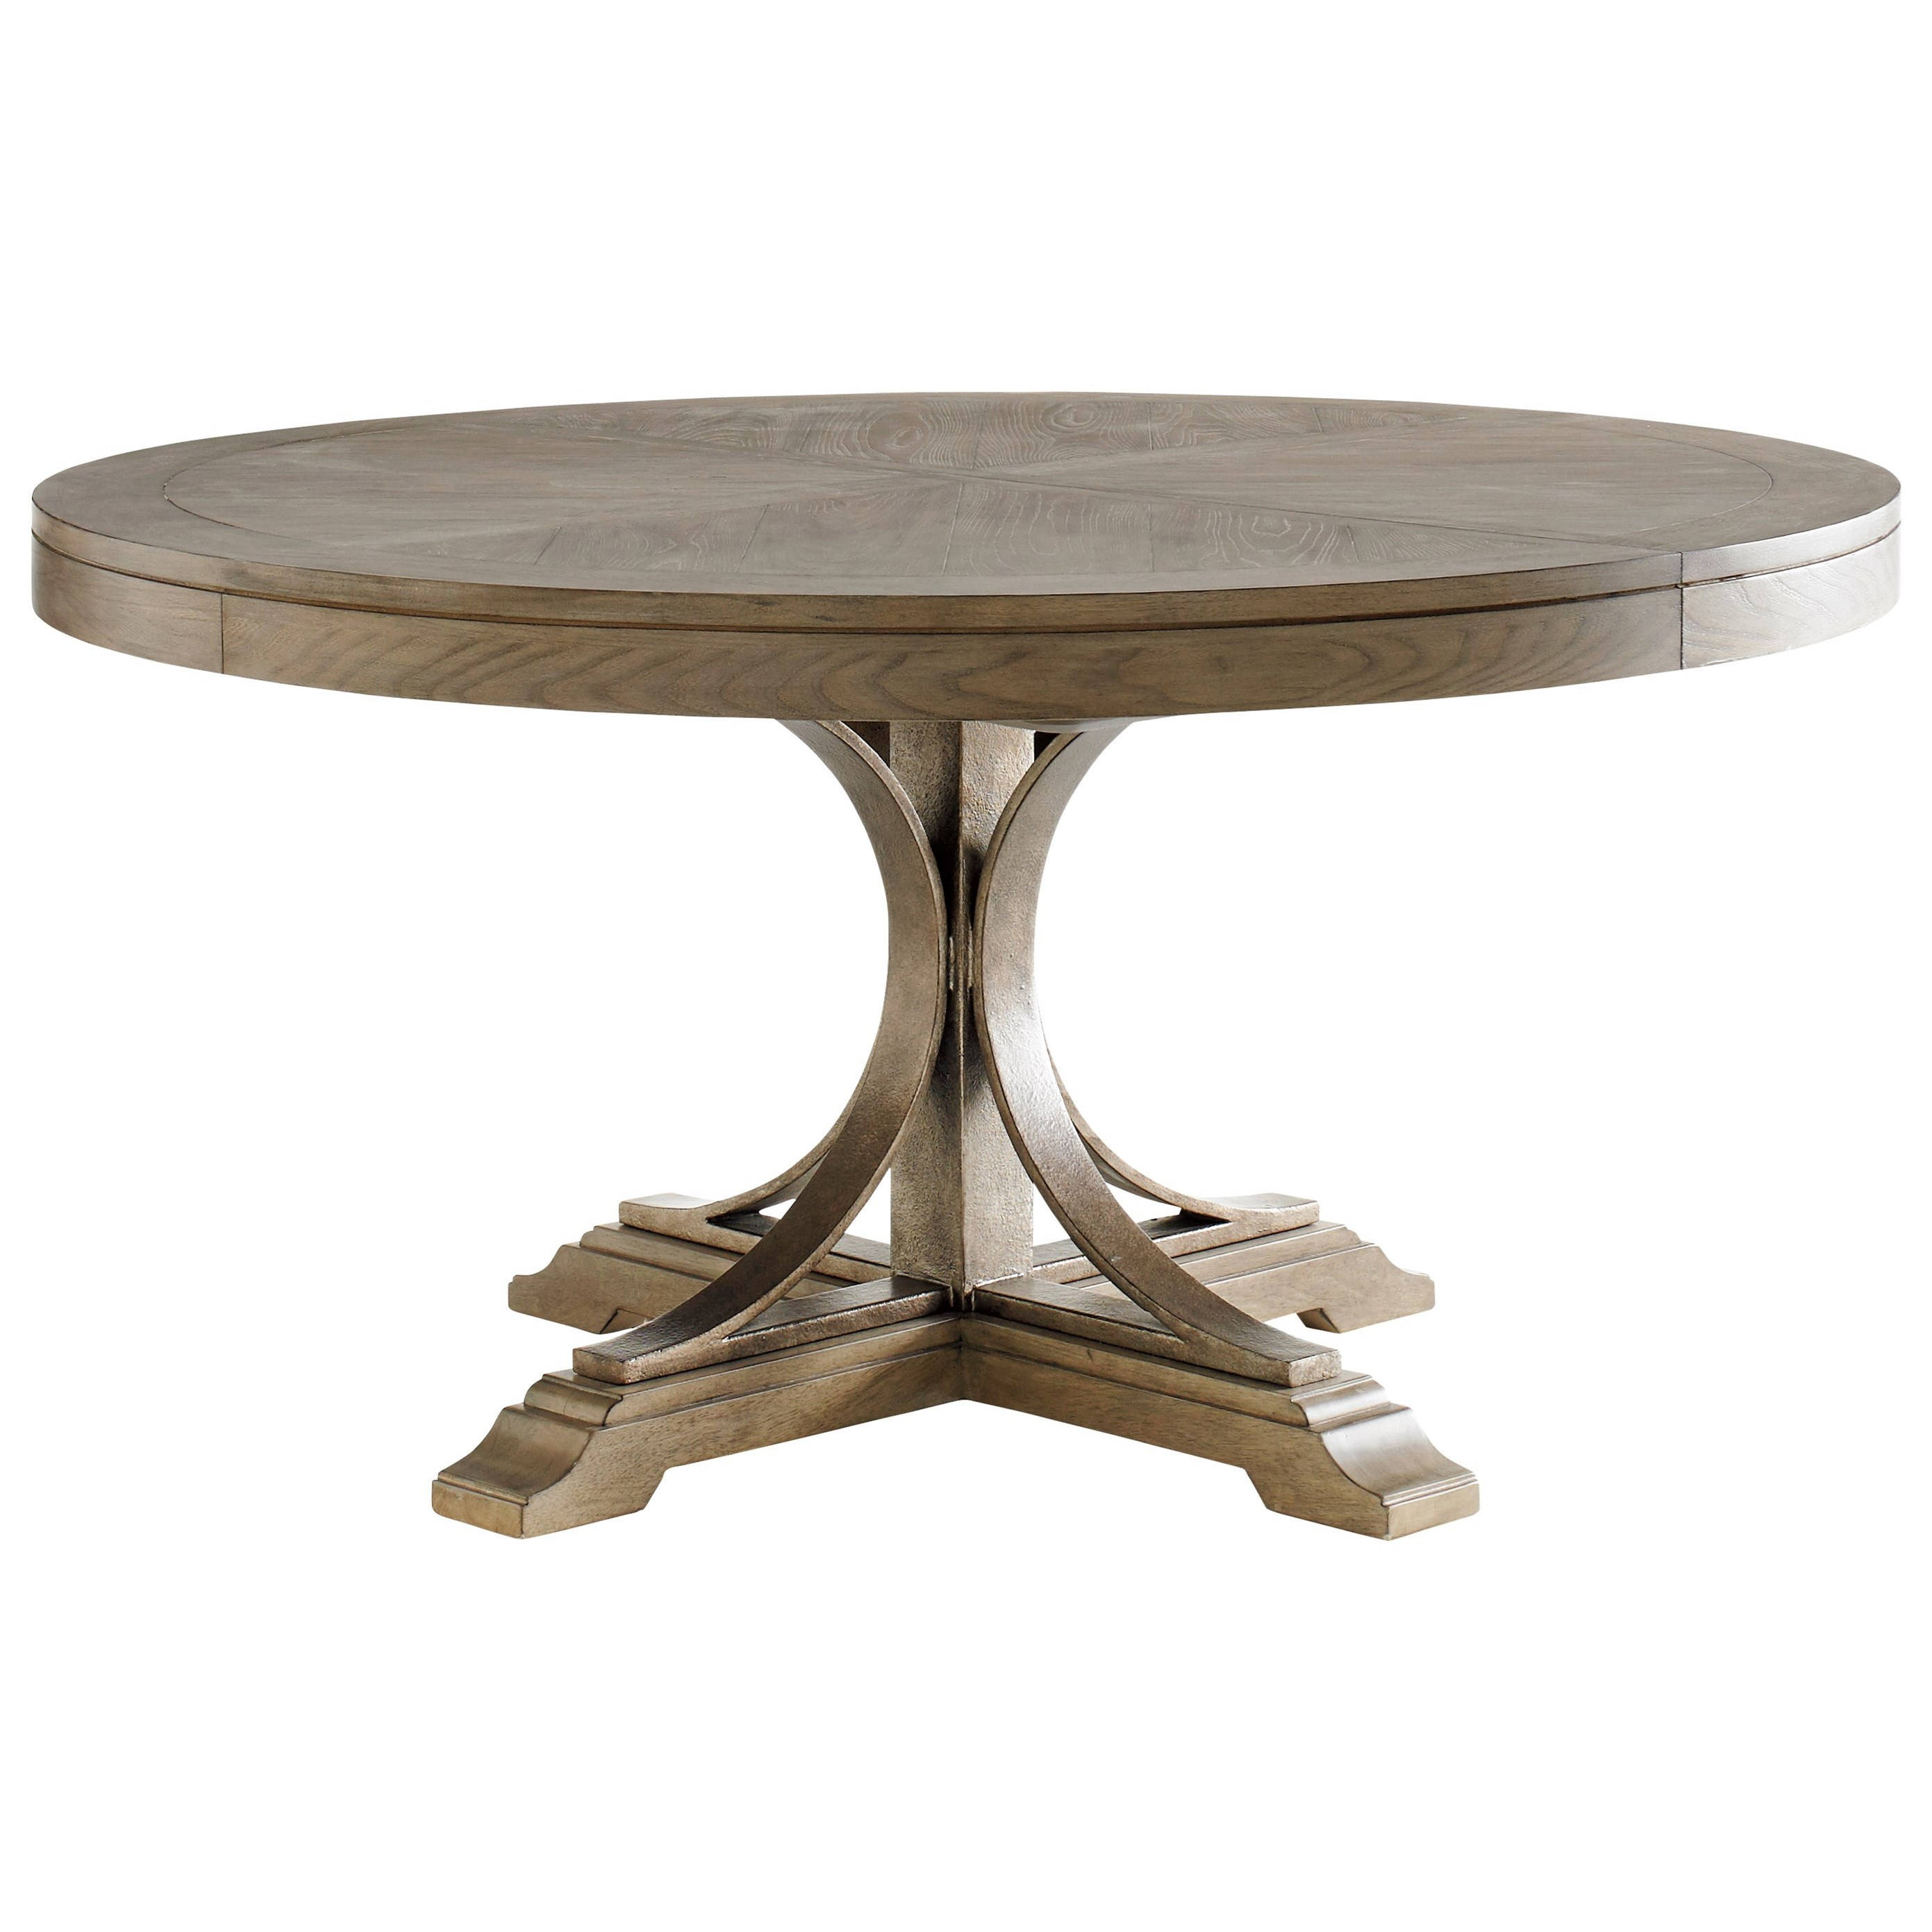 Tommy bahama home cypress point 561 875c atwell round for Round table 99 rosenheim